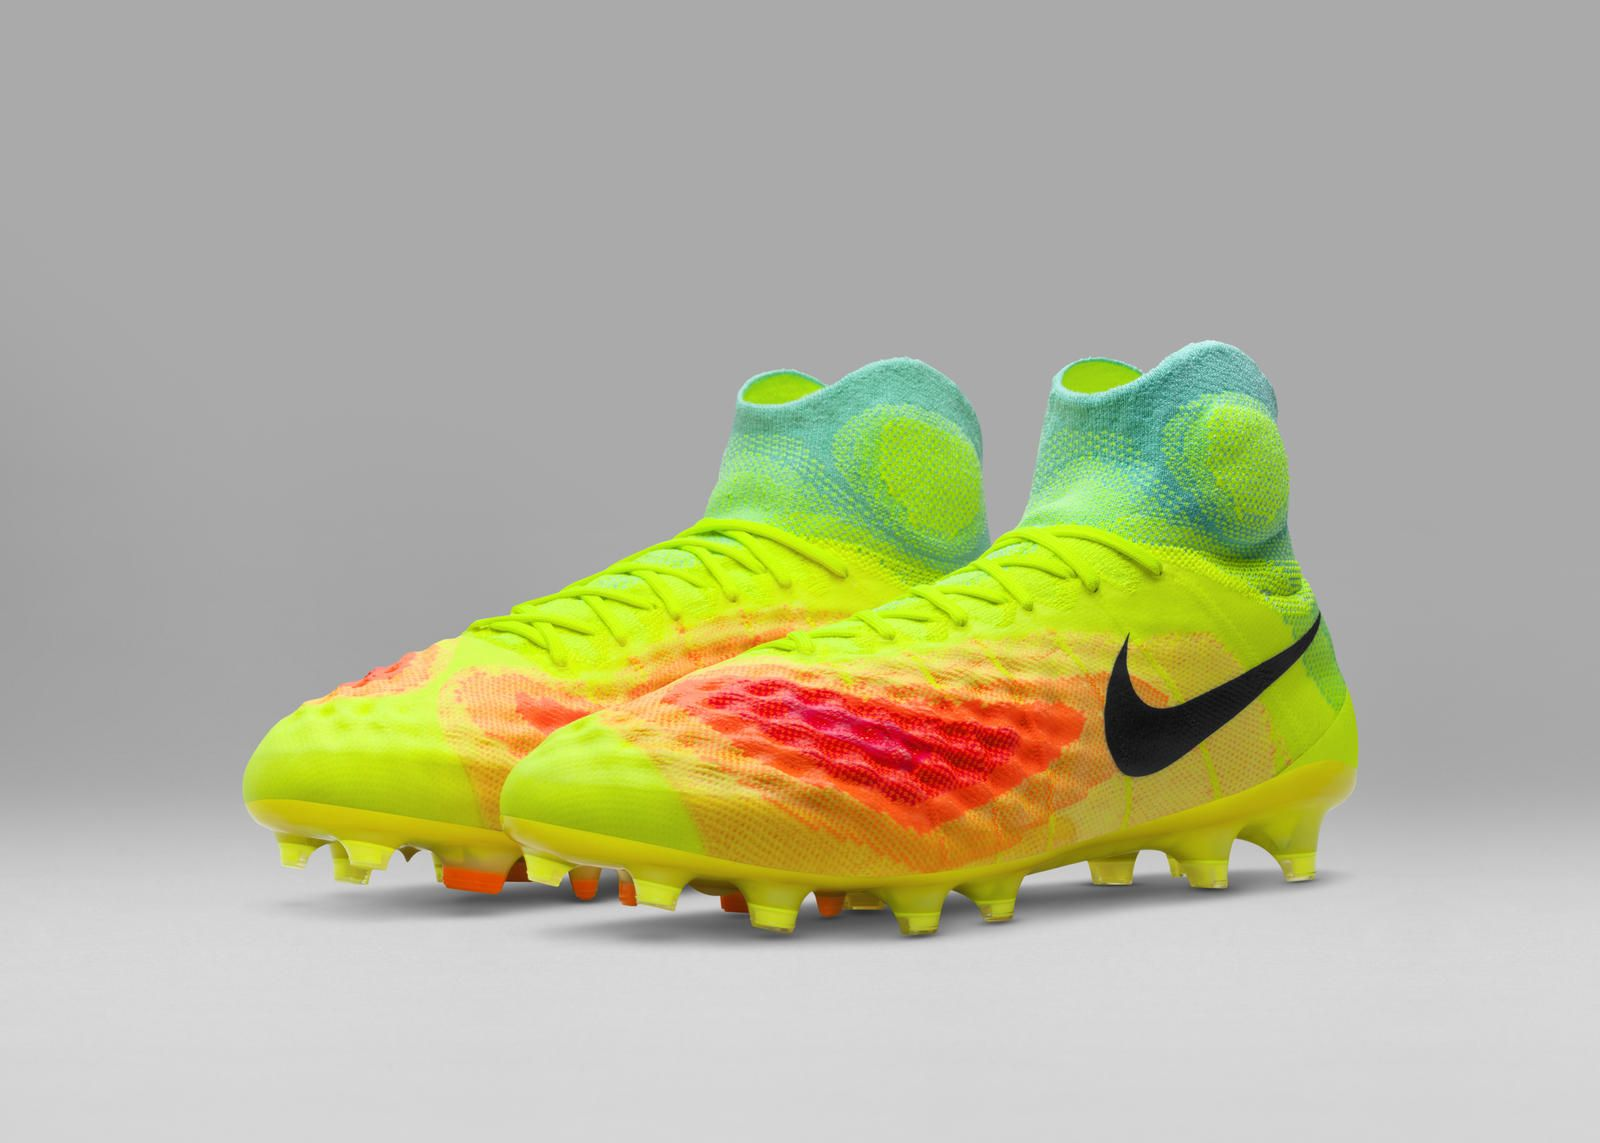 online here detailed look uk store Magista 2 | Soccer boots, Nike soccer shoes, Football boots